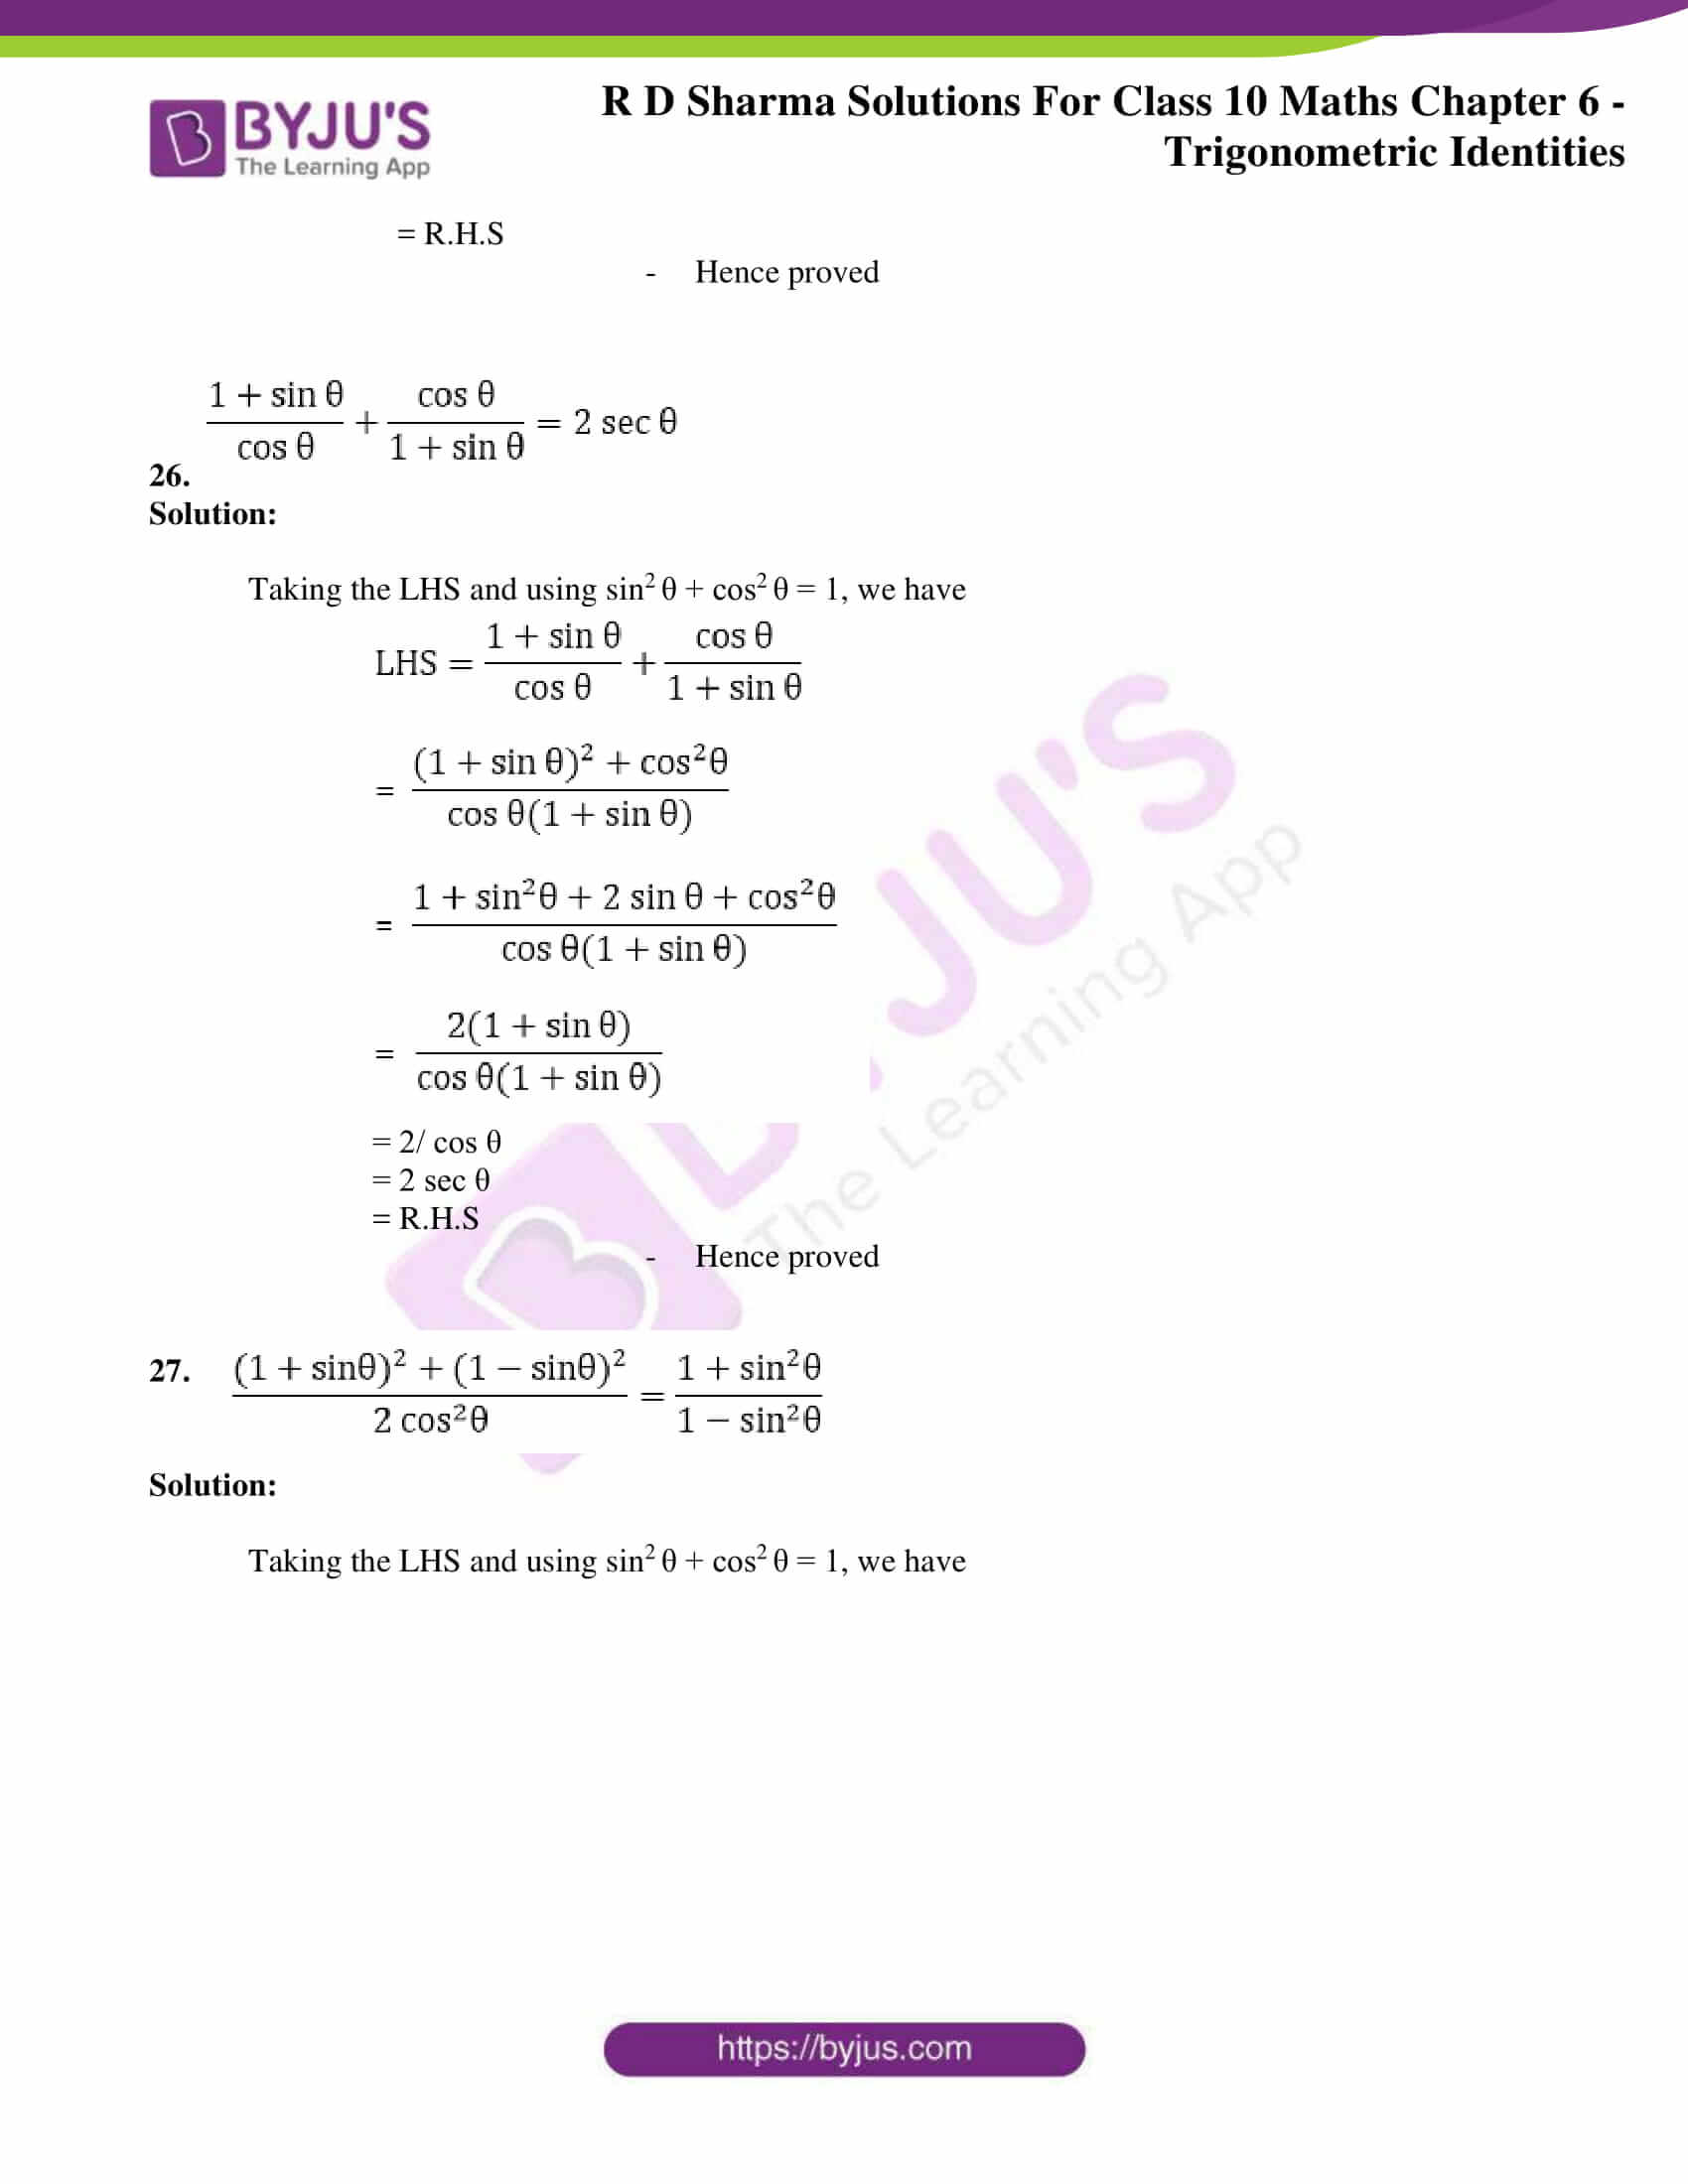 RD Sharma Solutions for Class 10 Chapter 6 Trigonometric Identities 14